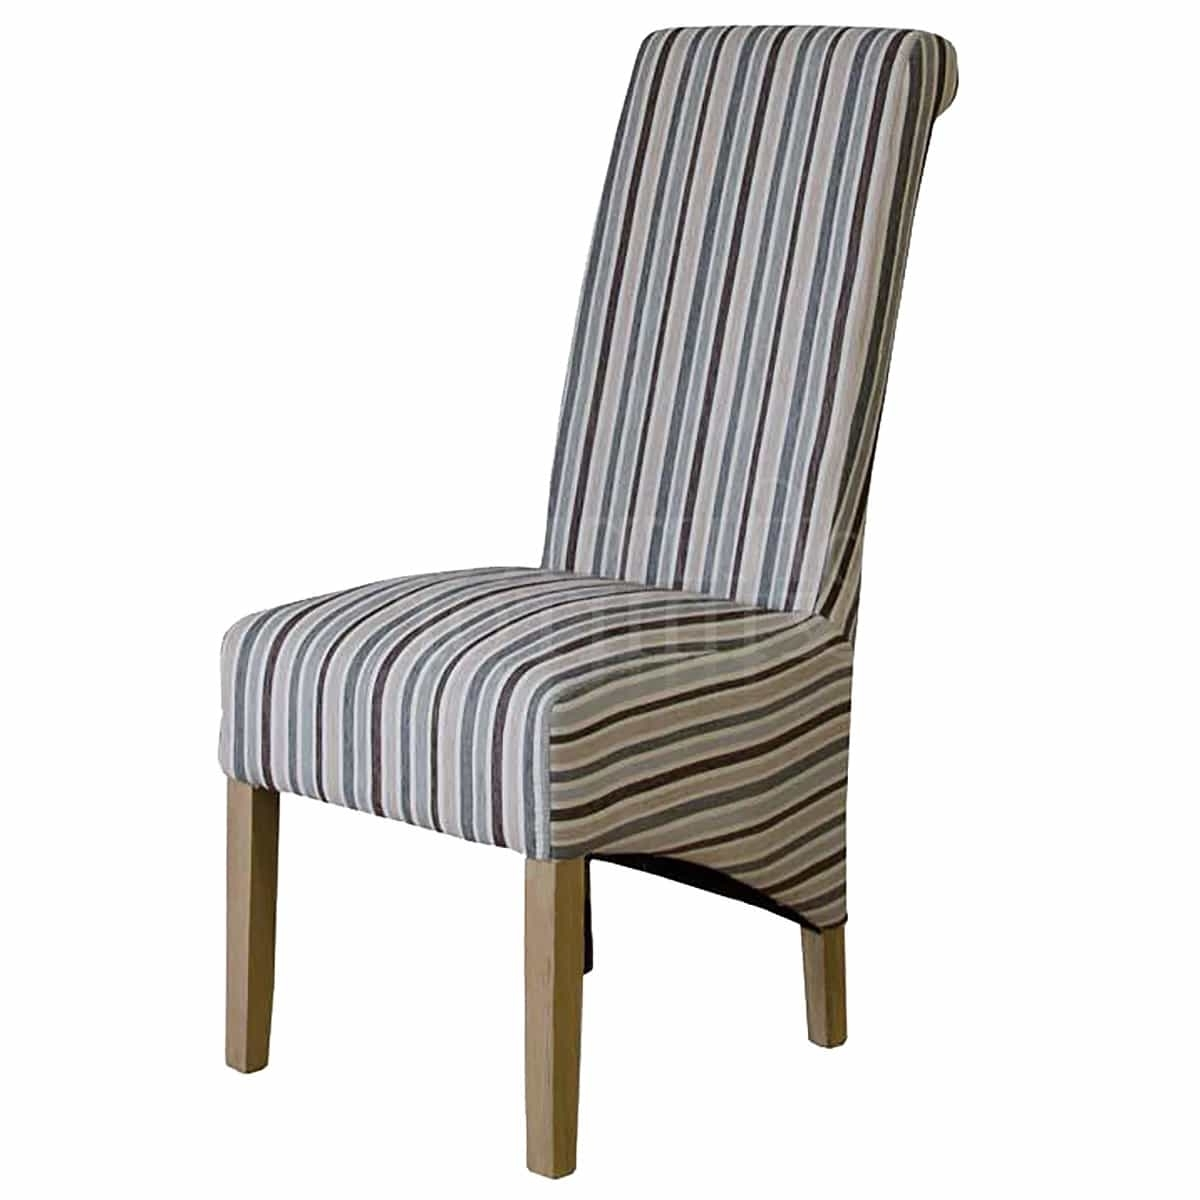 Well Known Rollback Duck Egg Blue Striped Fabric Dining Chair – Furniture And For Blue Stripe Dining Chairs (View 18 of 20)